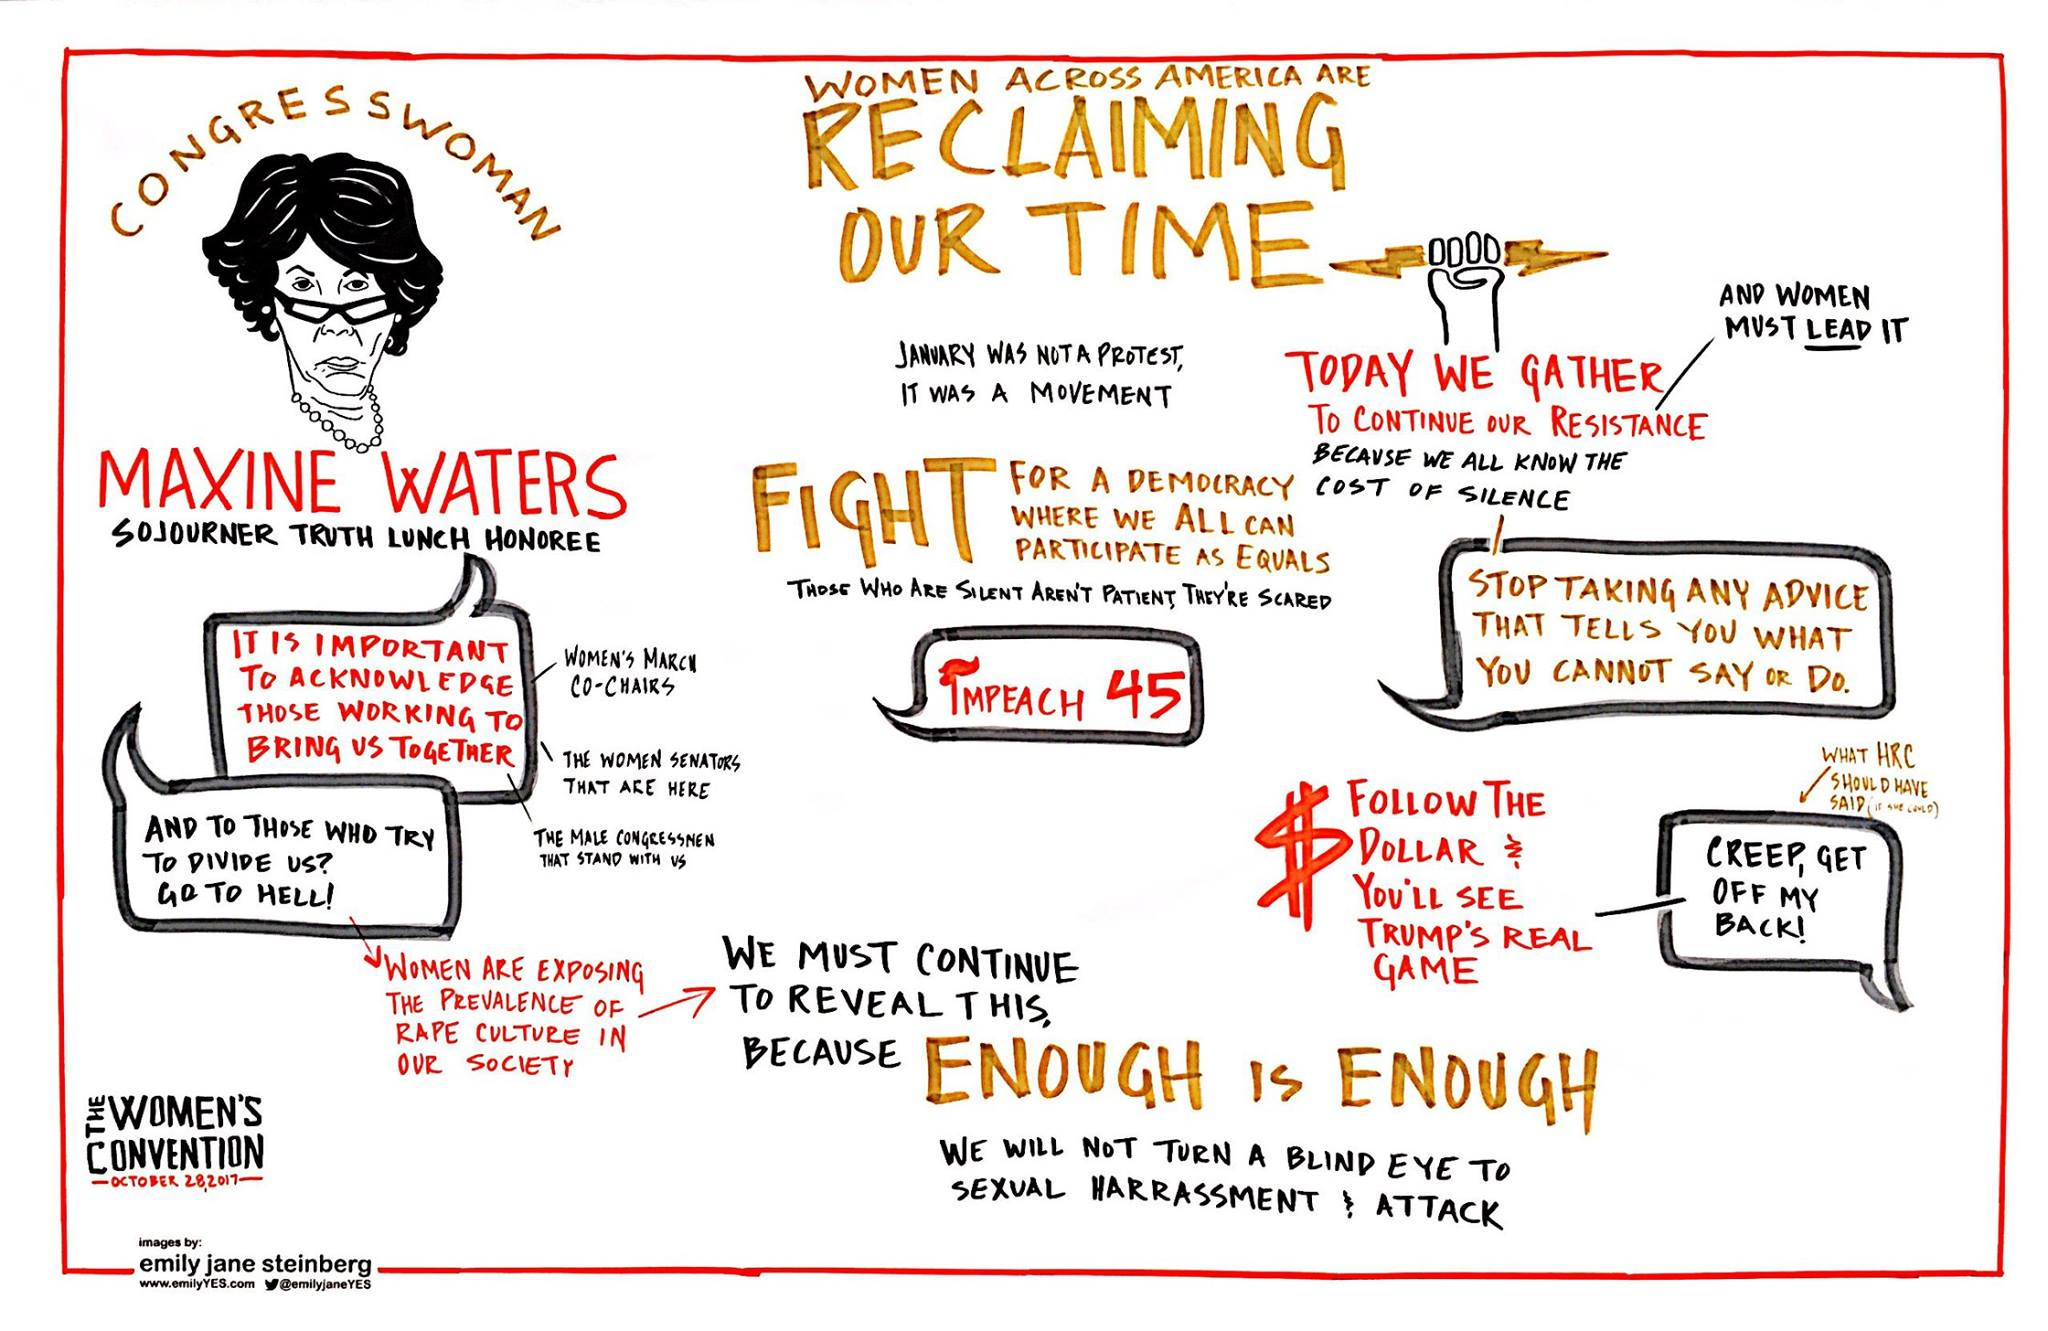 Posted by  Women's March : An illustrated guide to Maxine Waters' #WomensConvention speech and how women across America are #ReclaimingOurTime! Artwork: Emily Jane Steinberg